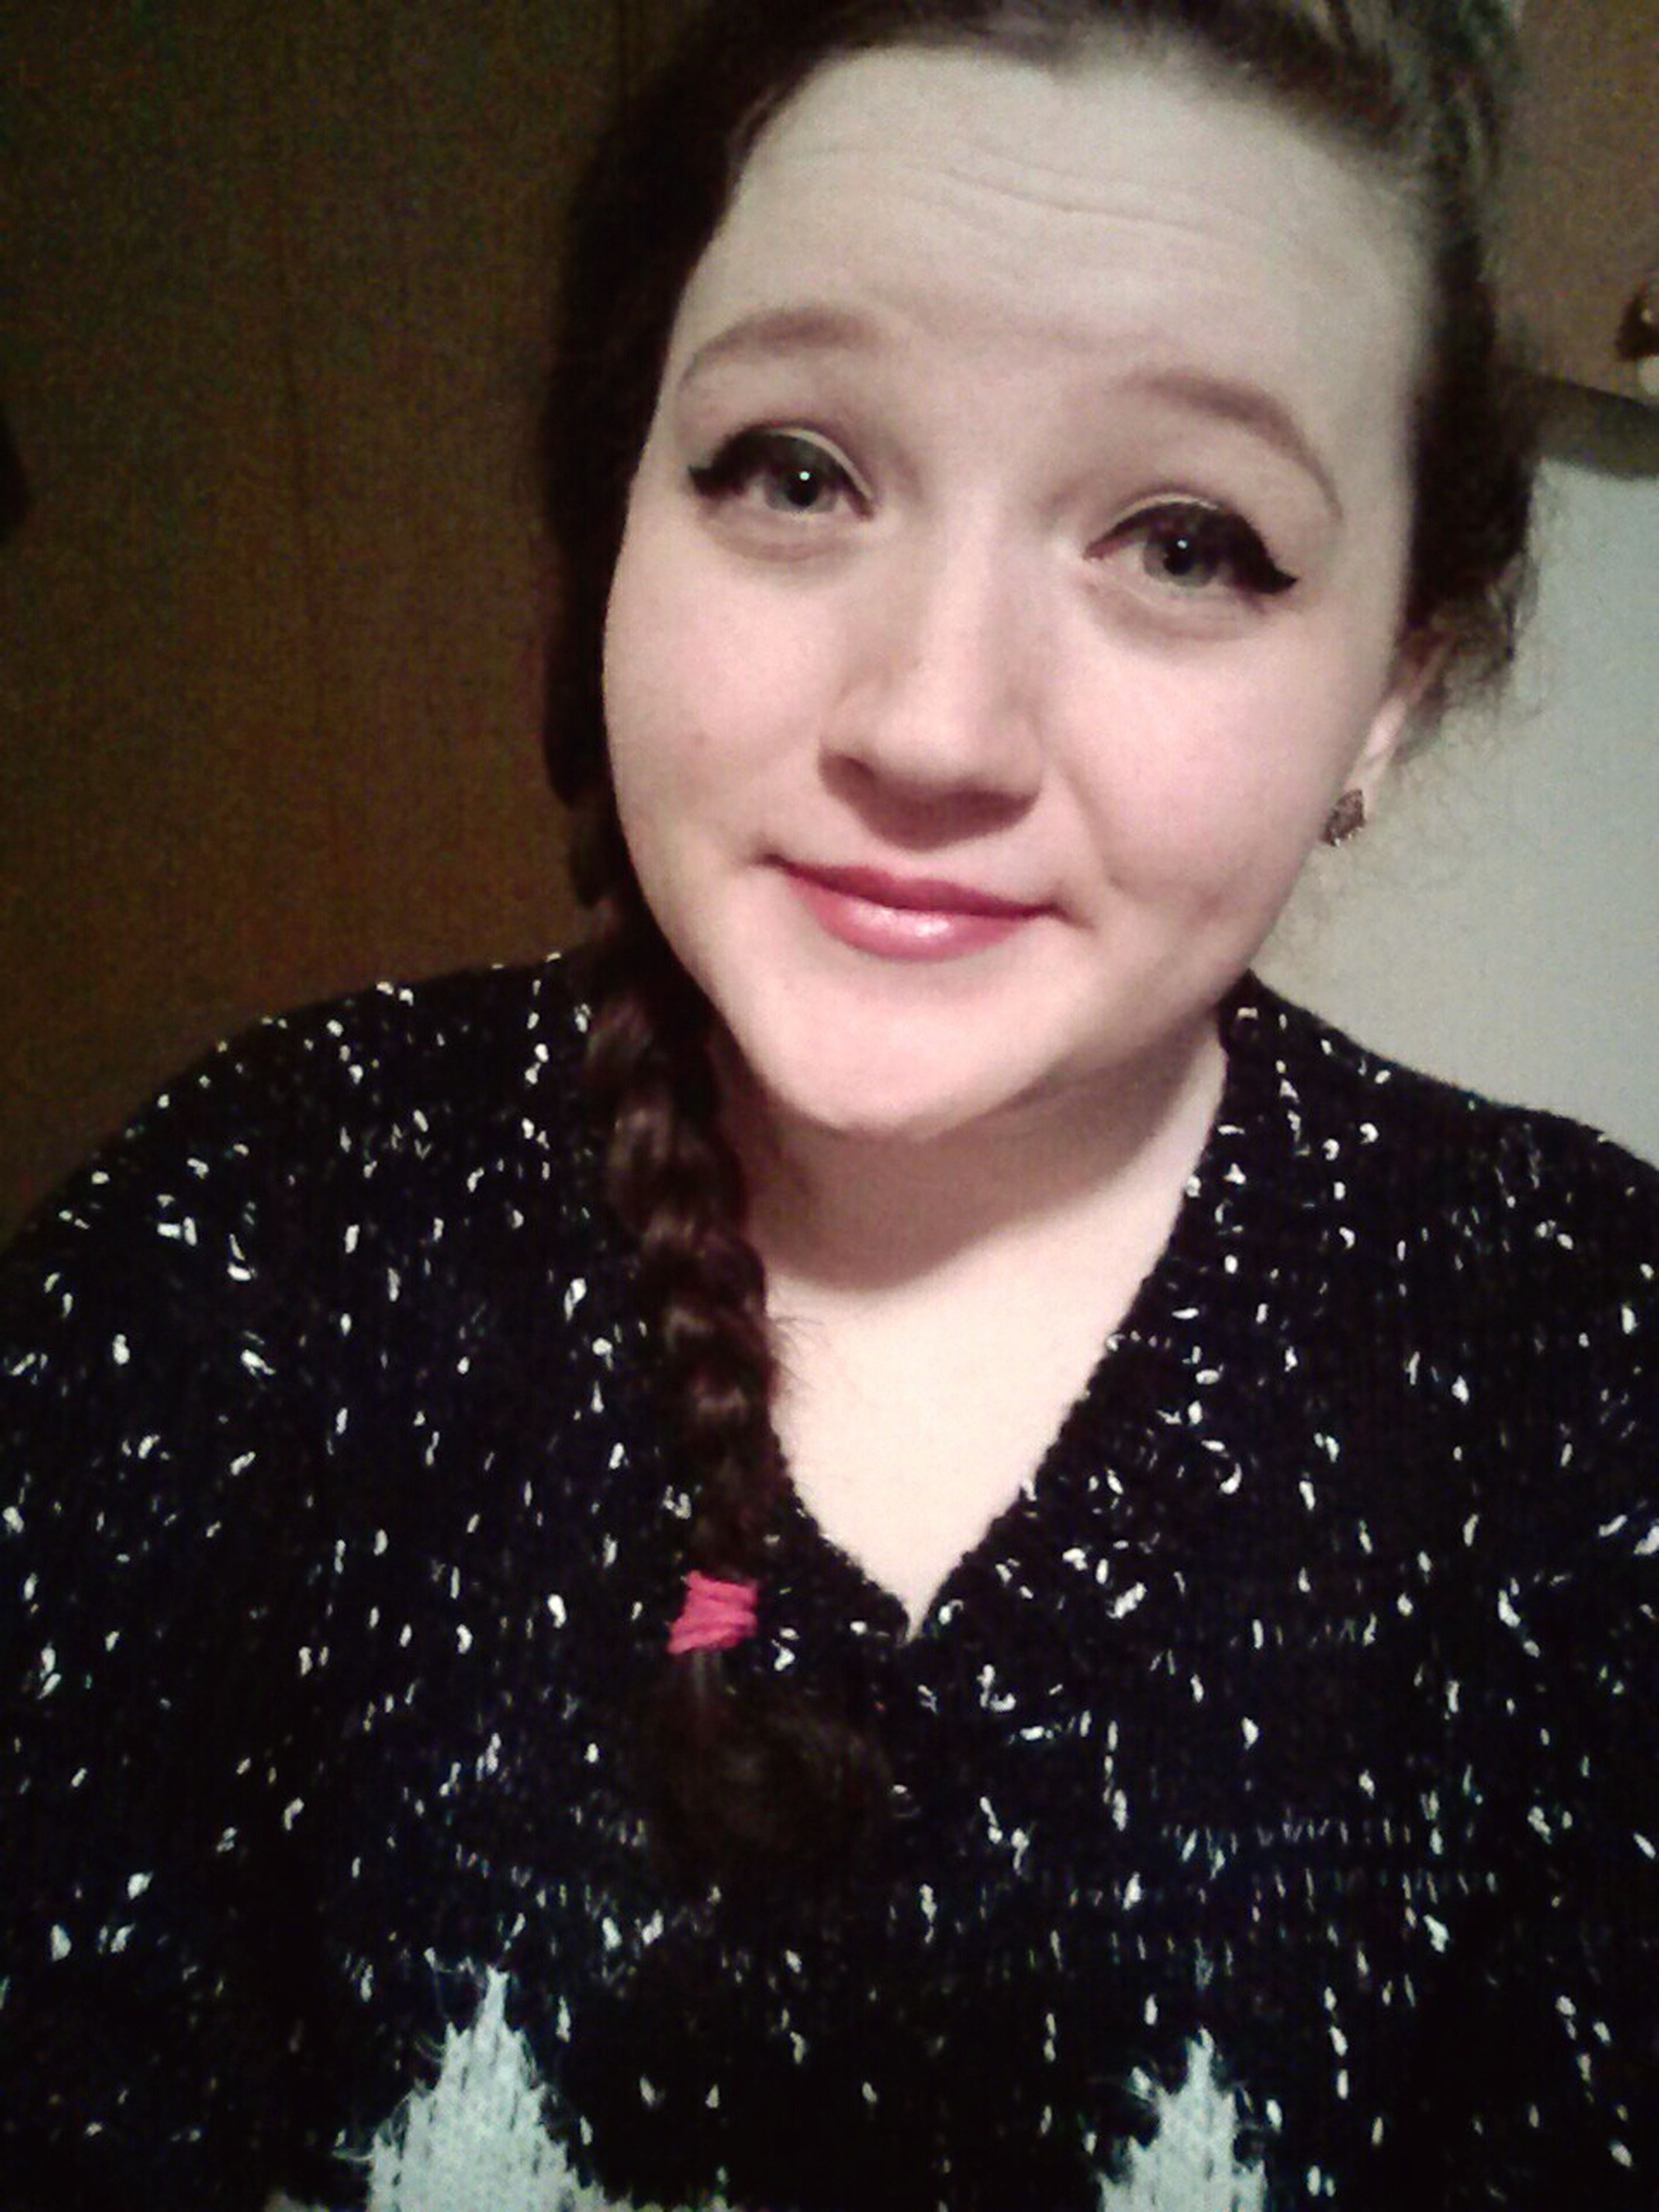 Christmas Eve selfie! About to head out for some last-minute shopping ^▽^)/ Selfie Christmas Eve Bluh Bluh